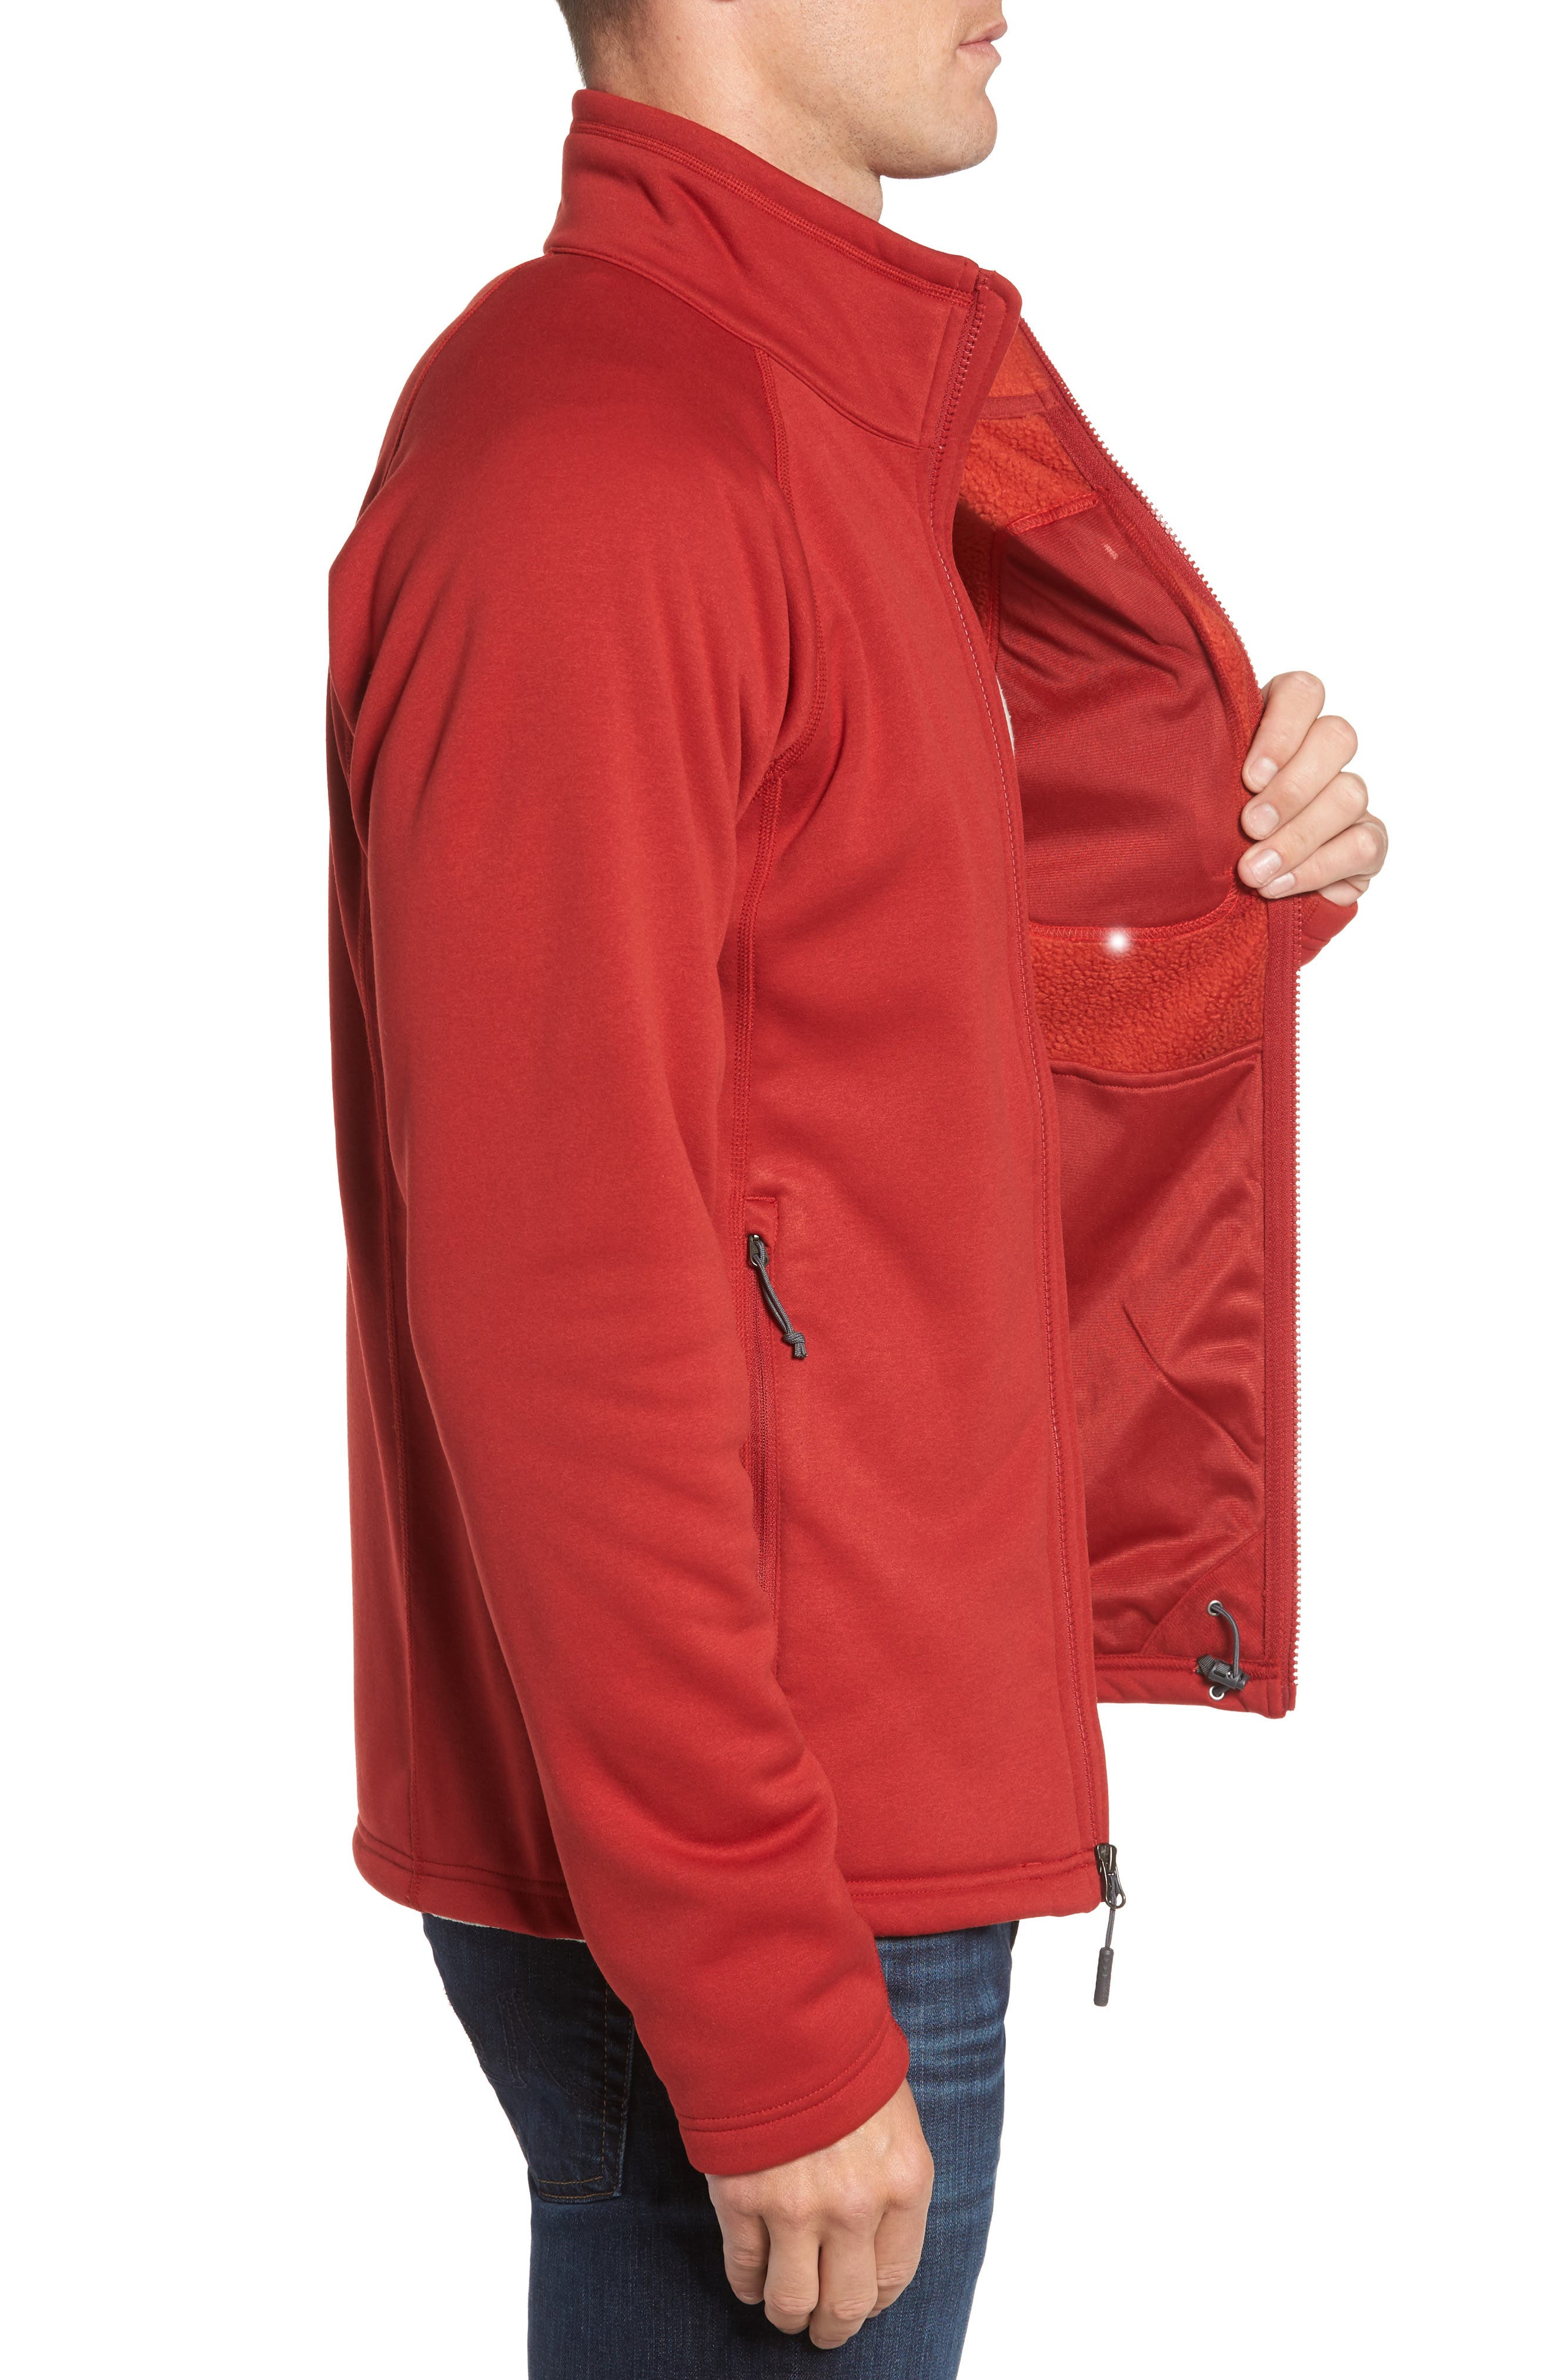 Timber Zip Jacket,                             Alternate thumbnail 9, color,